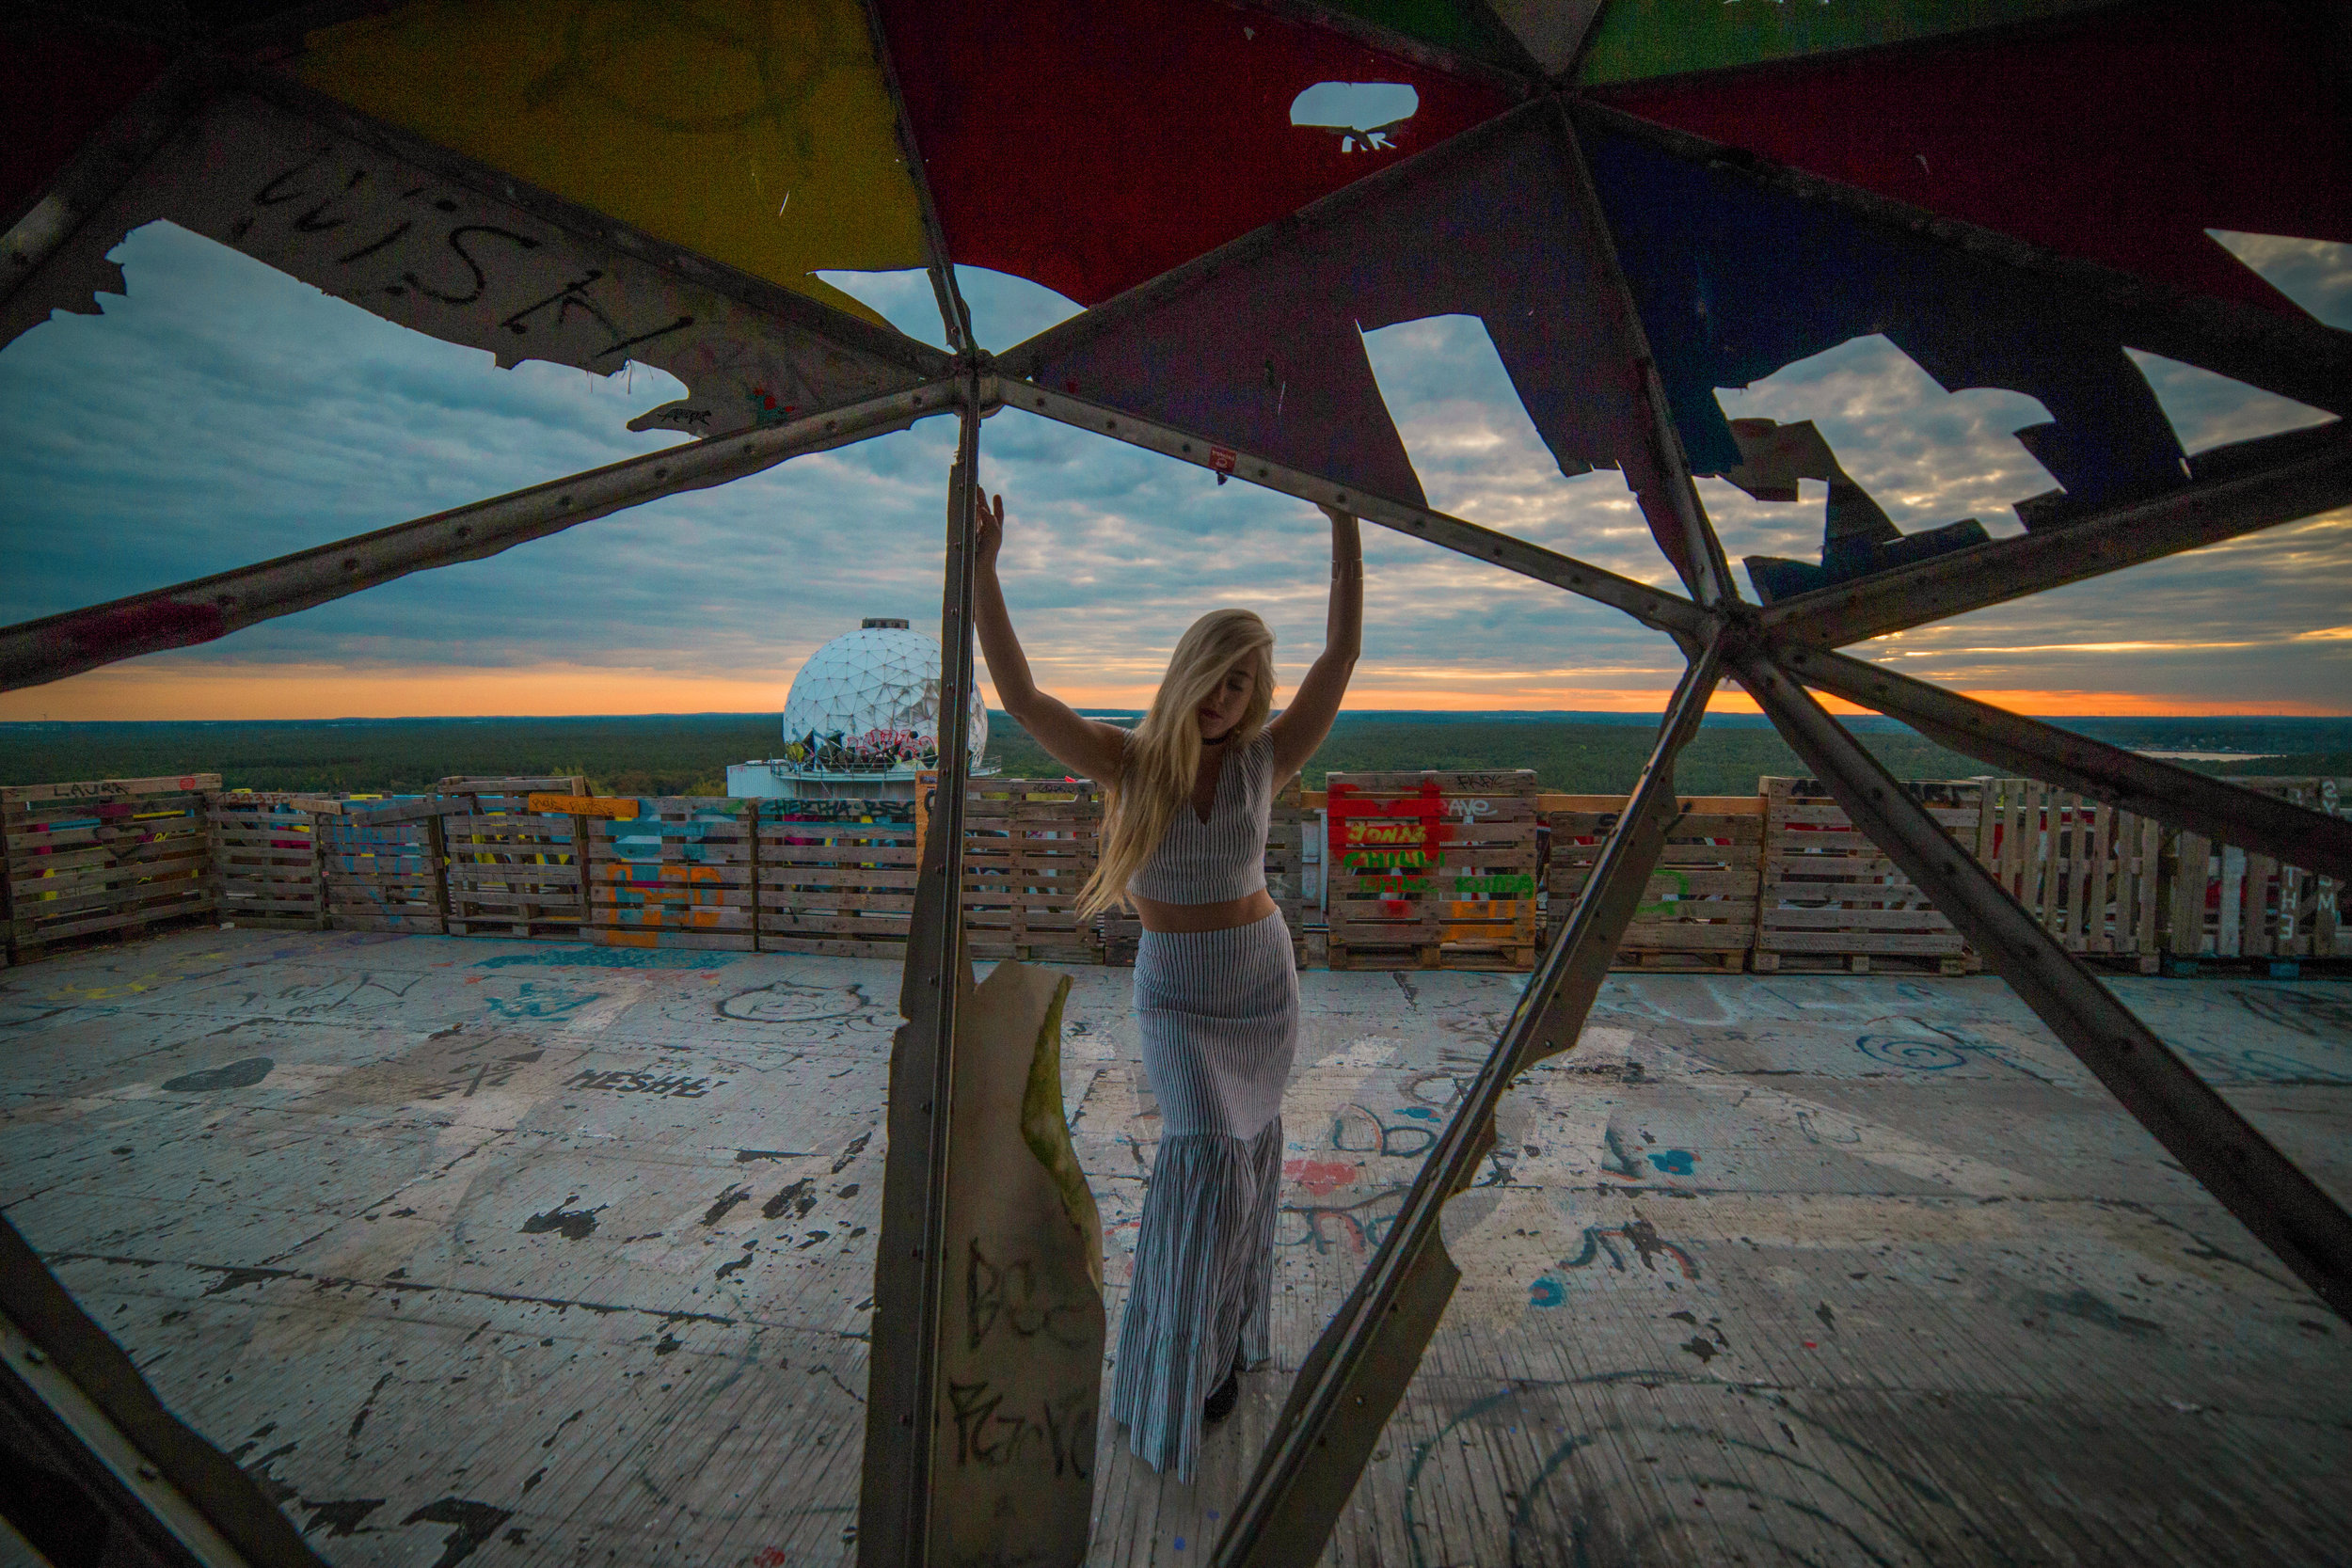 AstroBandit_Teufelsberg_Berlin_Germany_Abandoned_Sunset_4.jpg